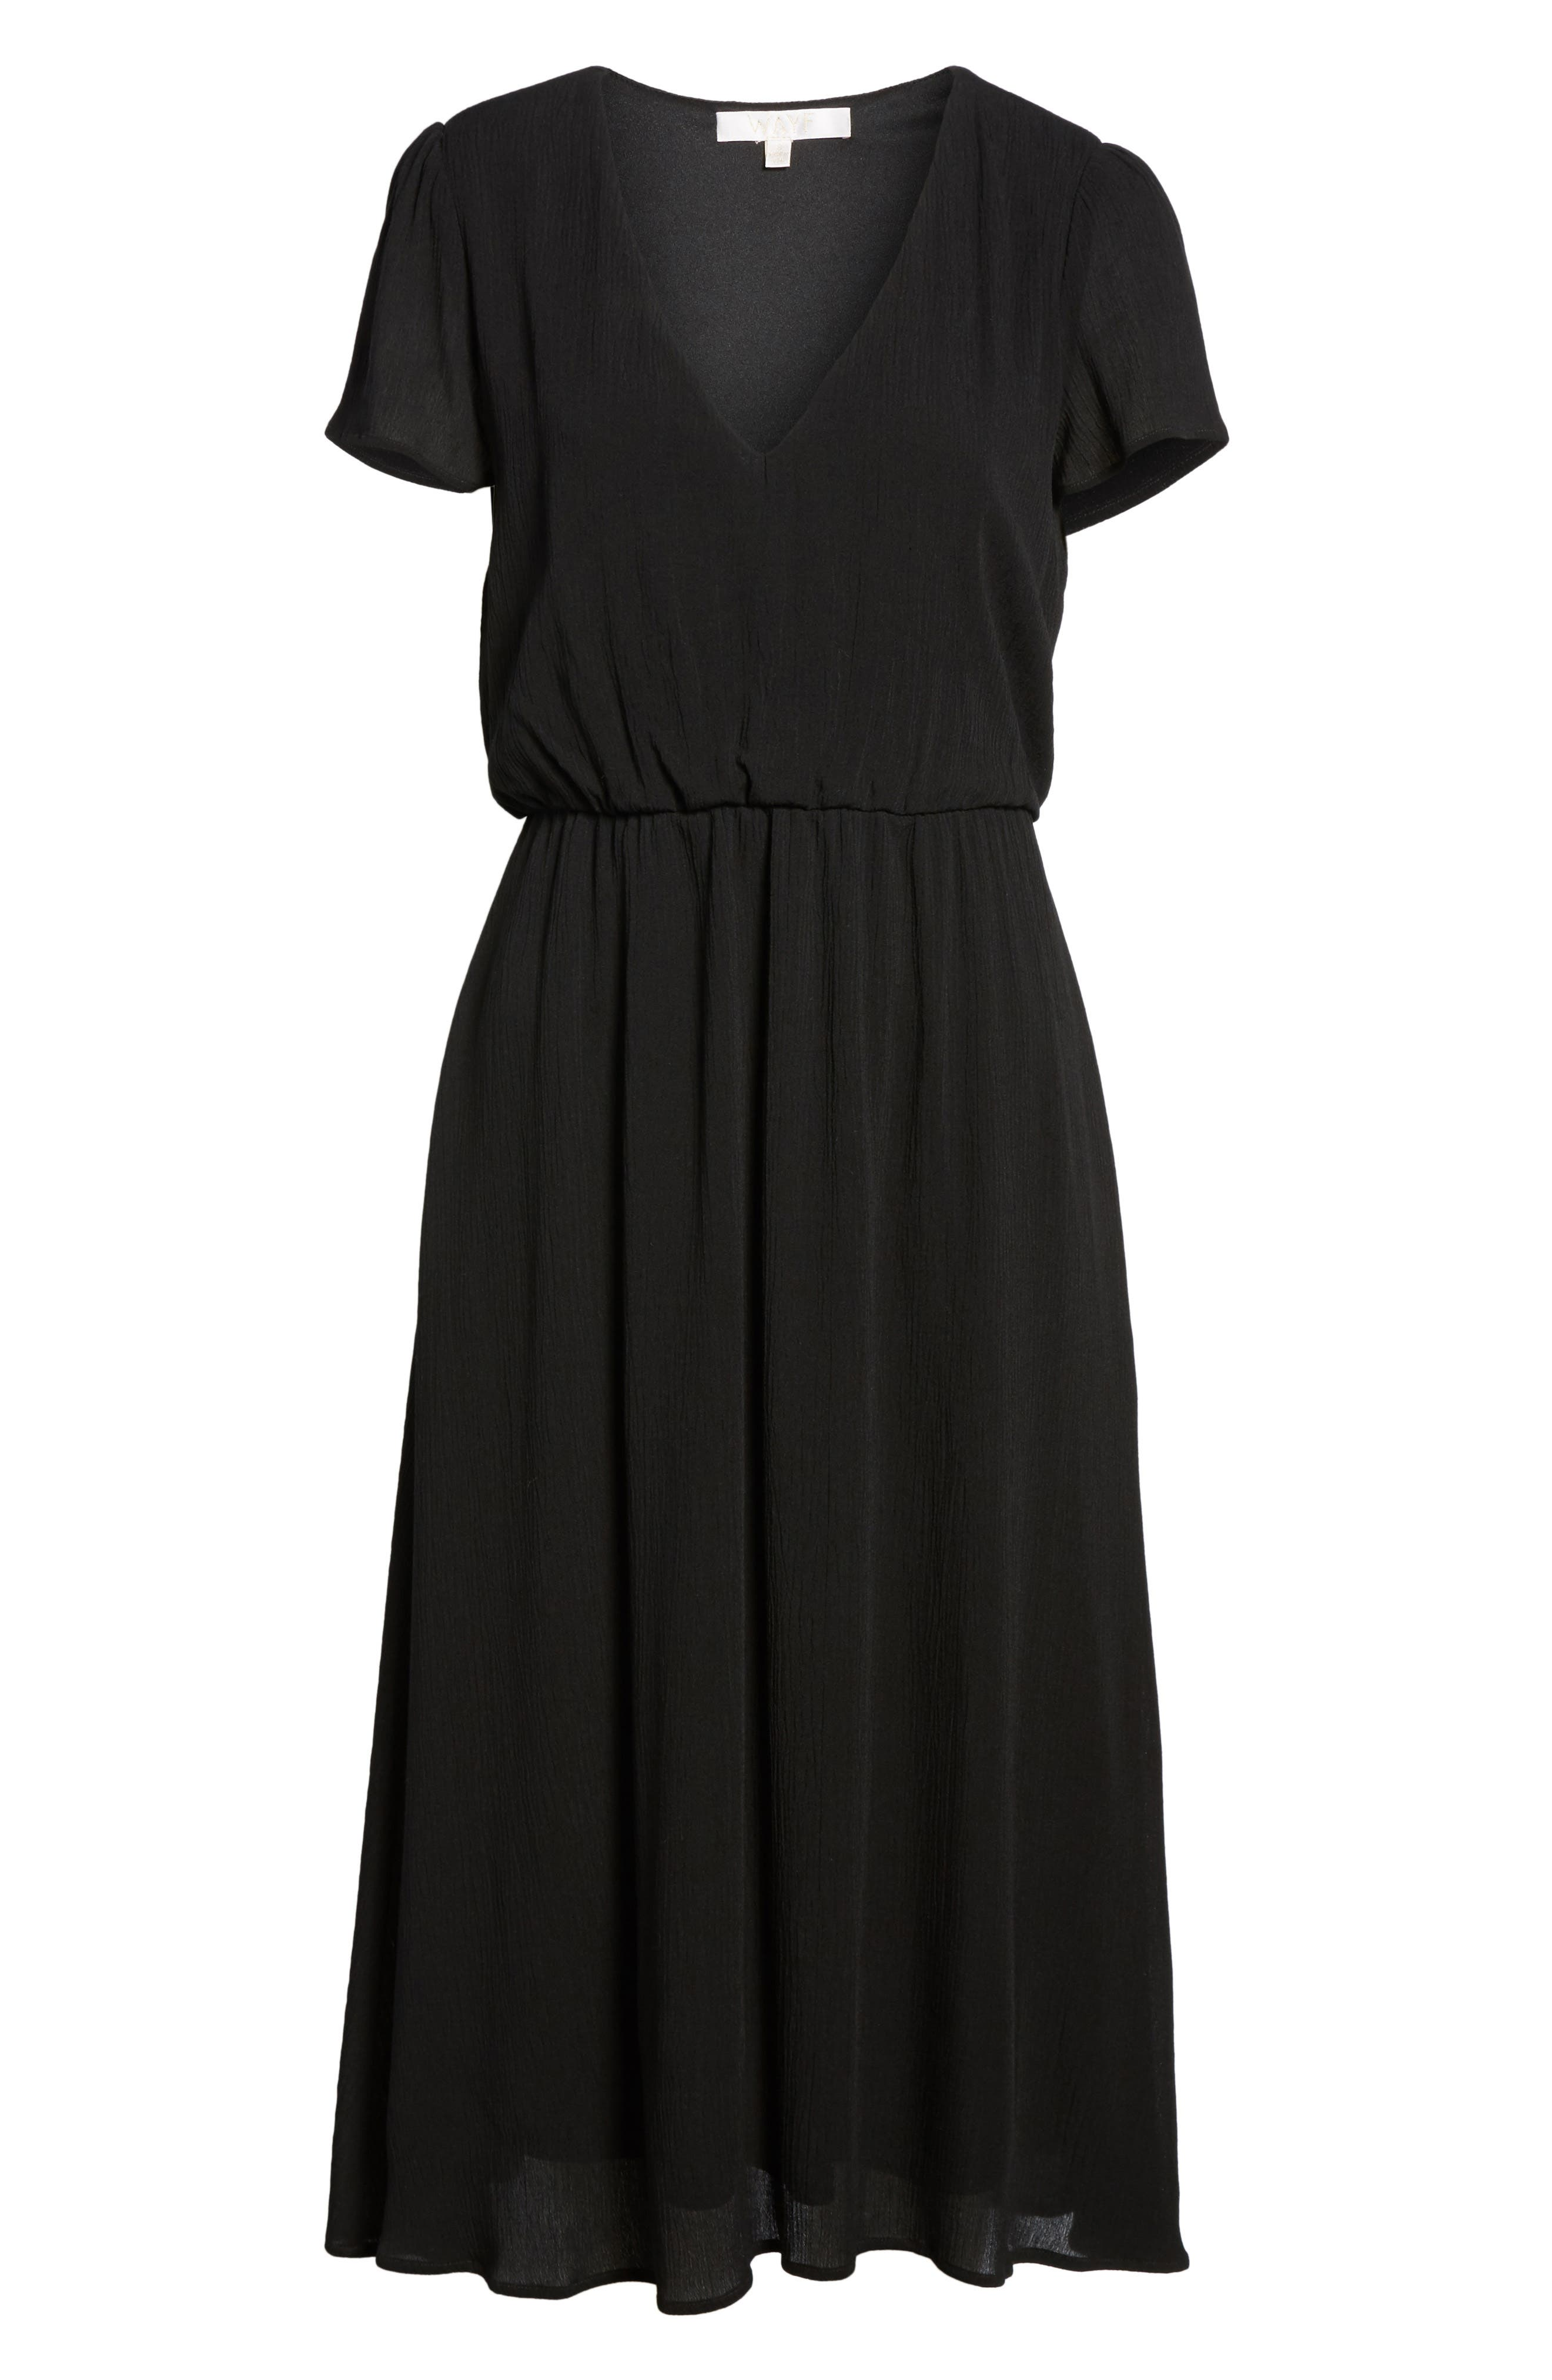 WAYF,                             Blouson Midi Dress,                             Alternate thumbnail 7, color,                             BLACK